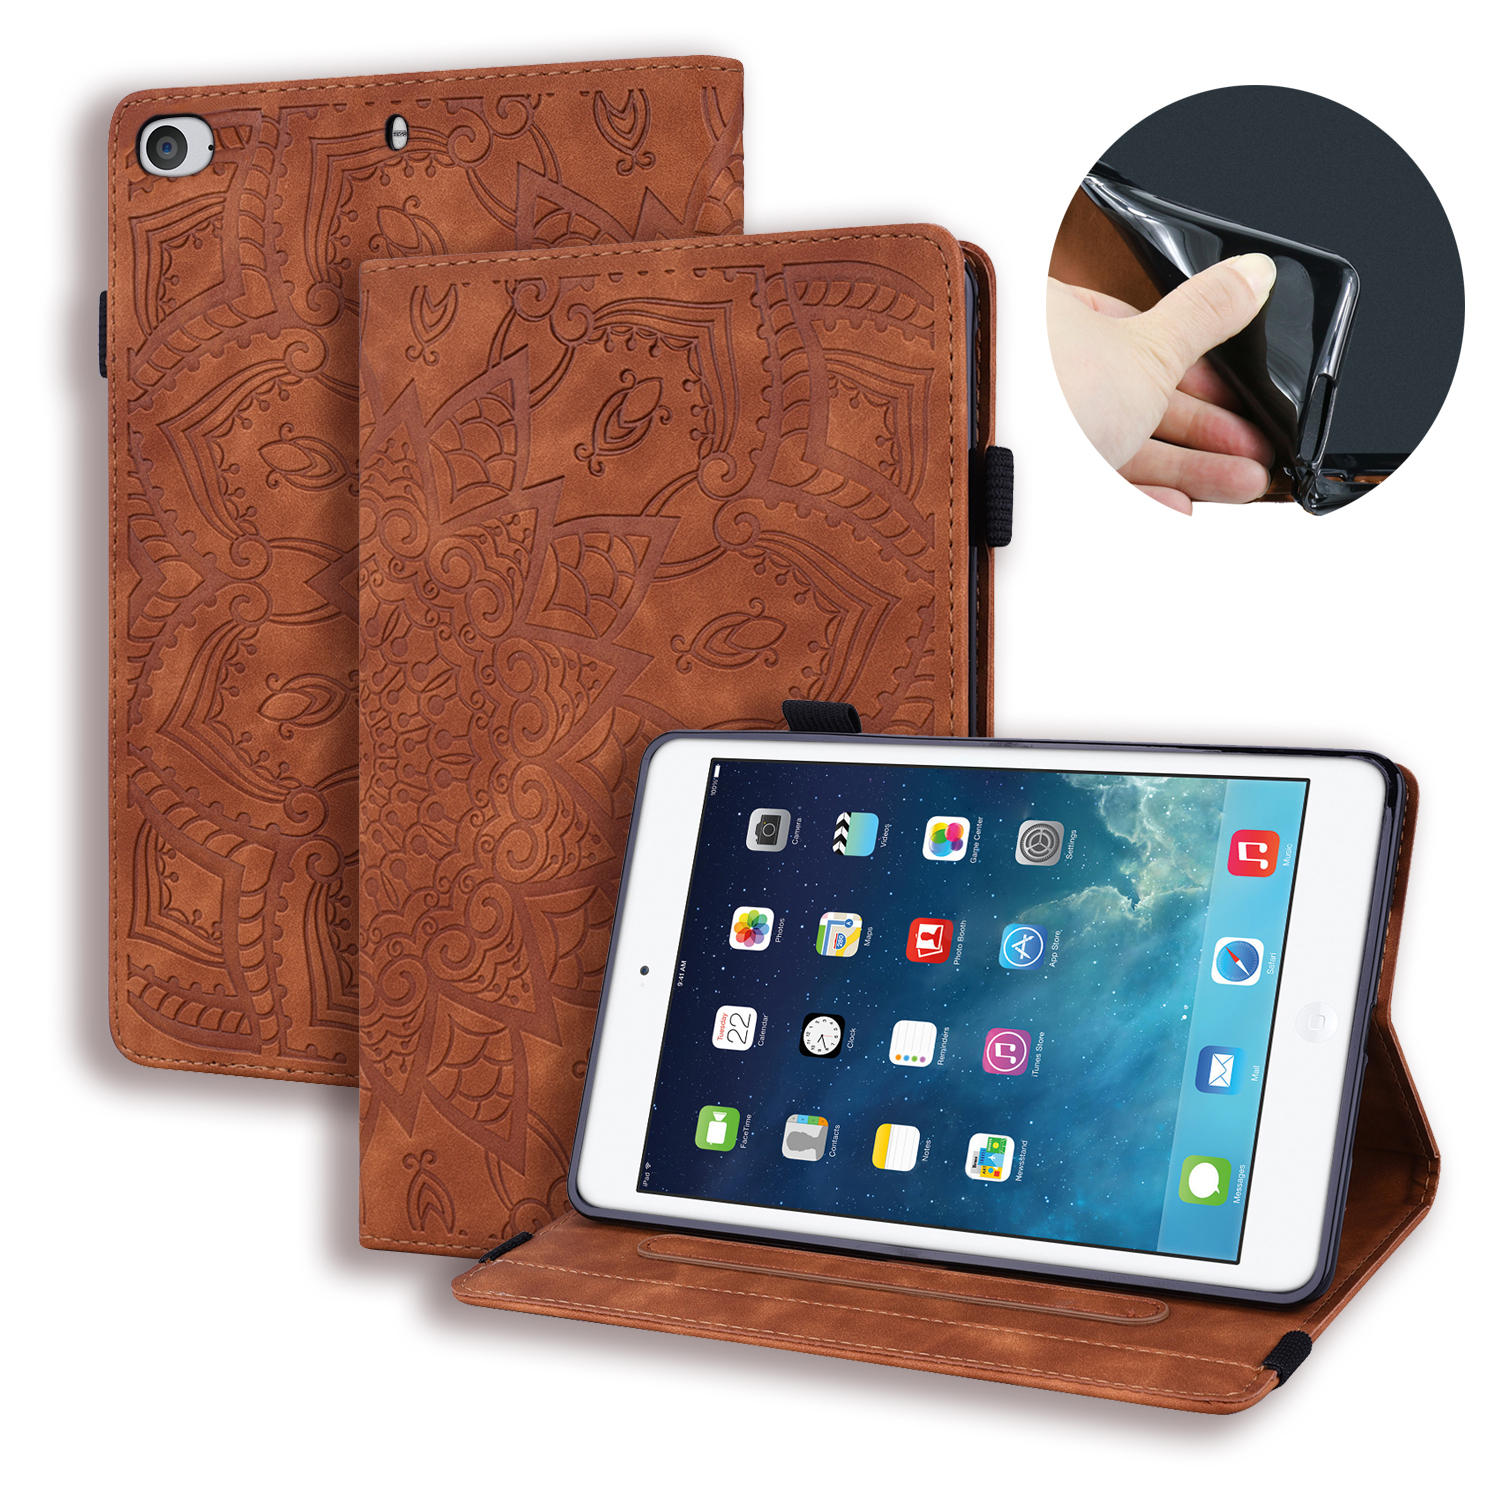 For <font><b>iPad</b></font> Mini 3 2 1 PU Leather Cover Funda Capa Case For Apple <font><b>iPad</b></font> Mini 1 2 3 <font><b>A1432</b></font> A1454 tablet Cover Flip <font><b>Coque</b></font> image